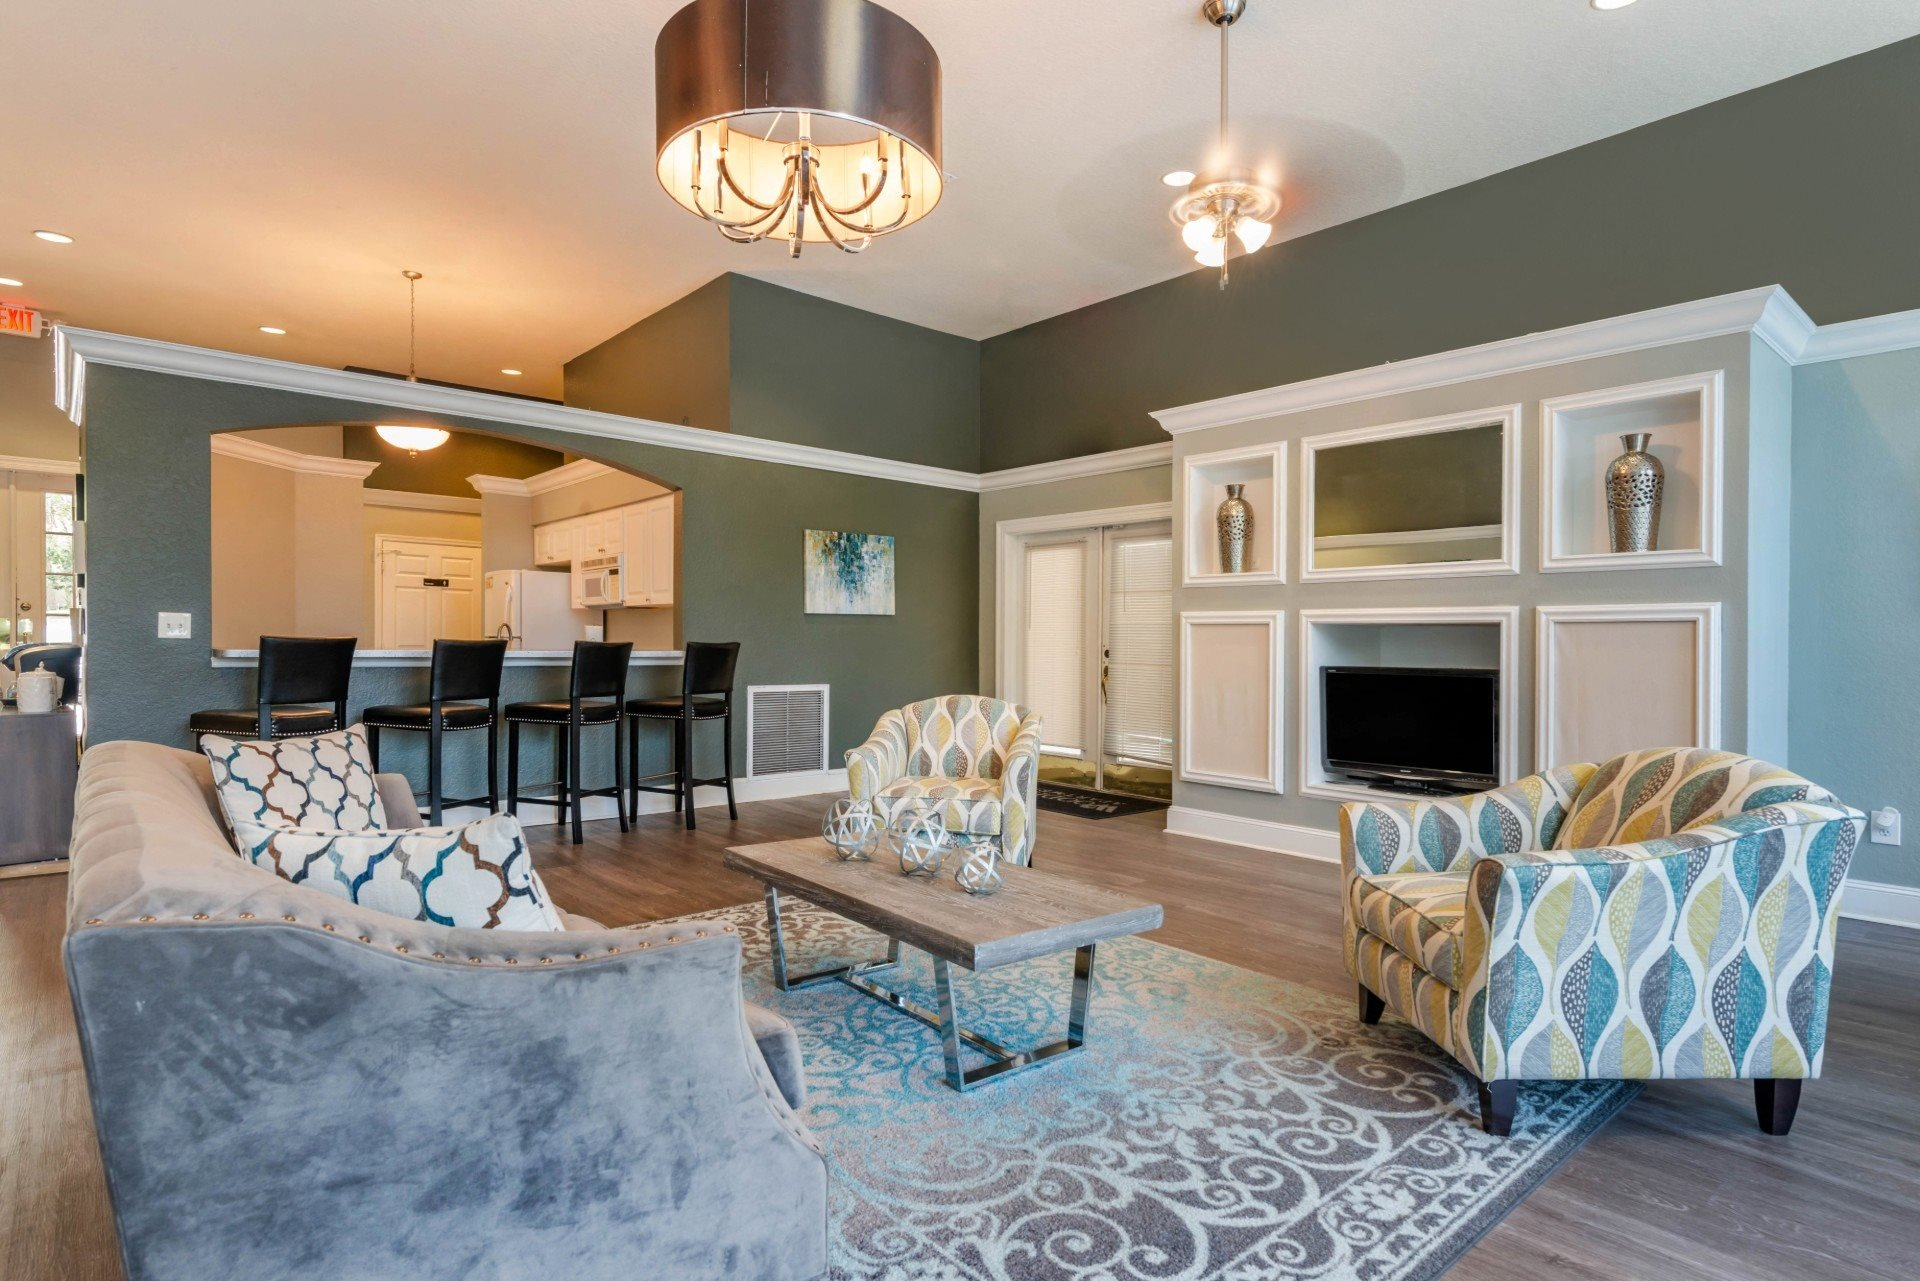 Resident clubhouse with fireplace, couch, two chairs, coffee table, rug and bar stools